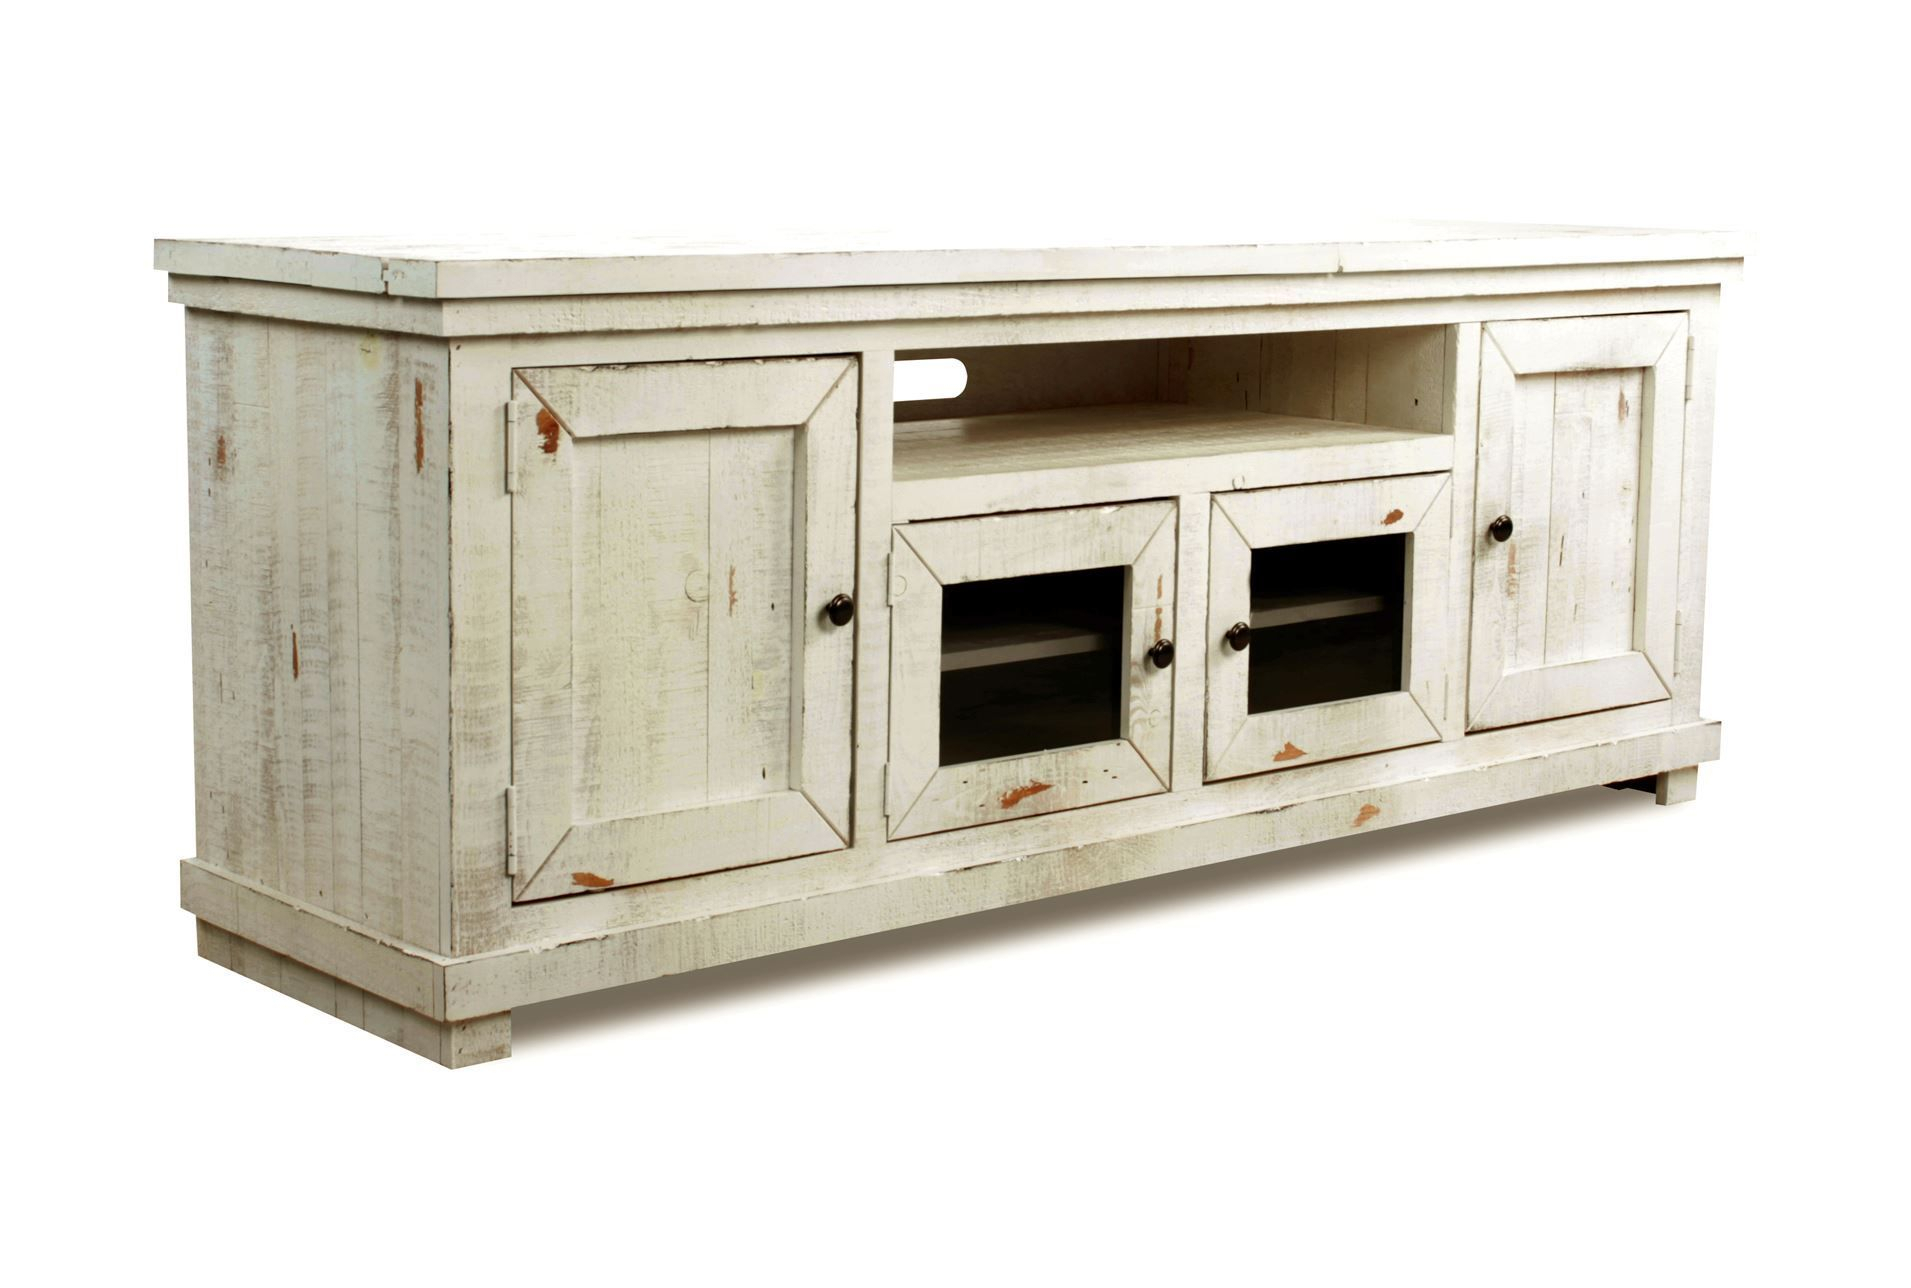 Sinclair White 74 Inch Tv Stand | Furniture Collection | Living Room Regarding Sinclair White 64 Inch Tv Stands (View 3 of 30)